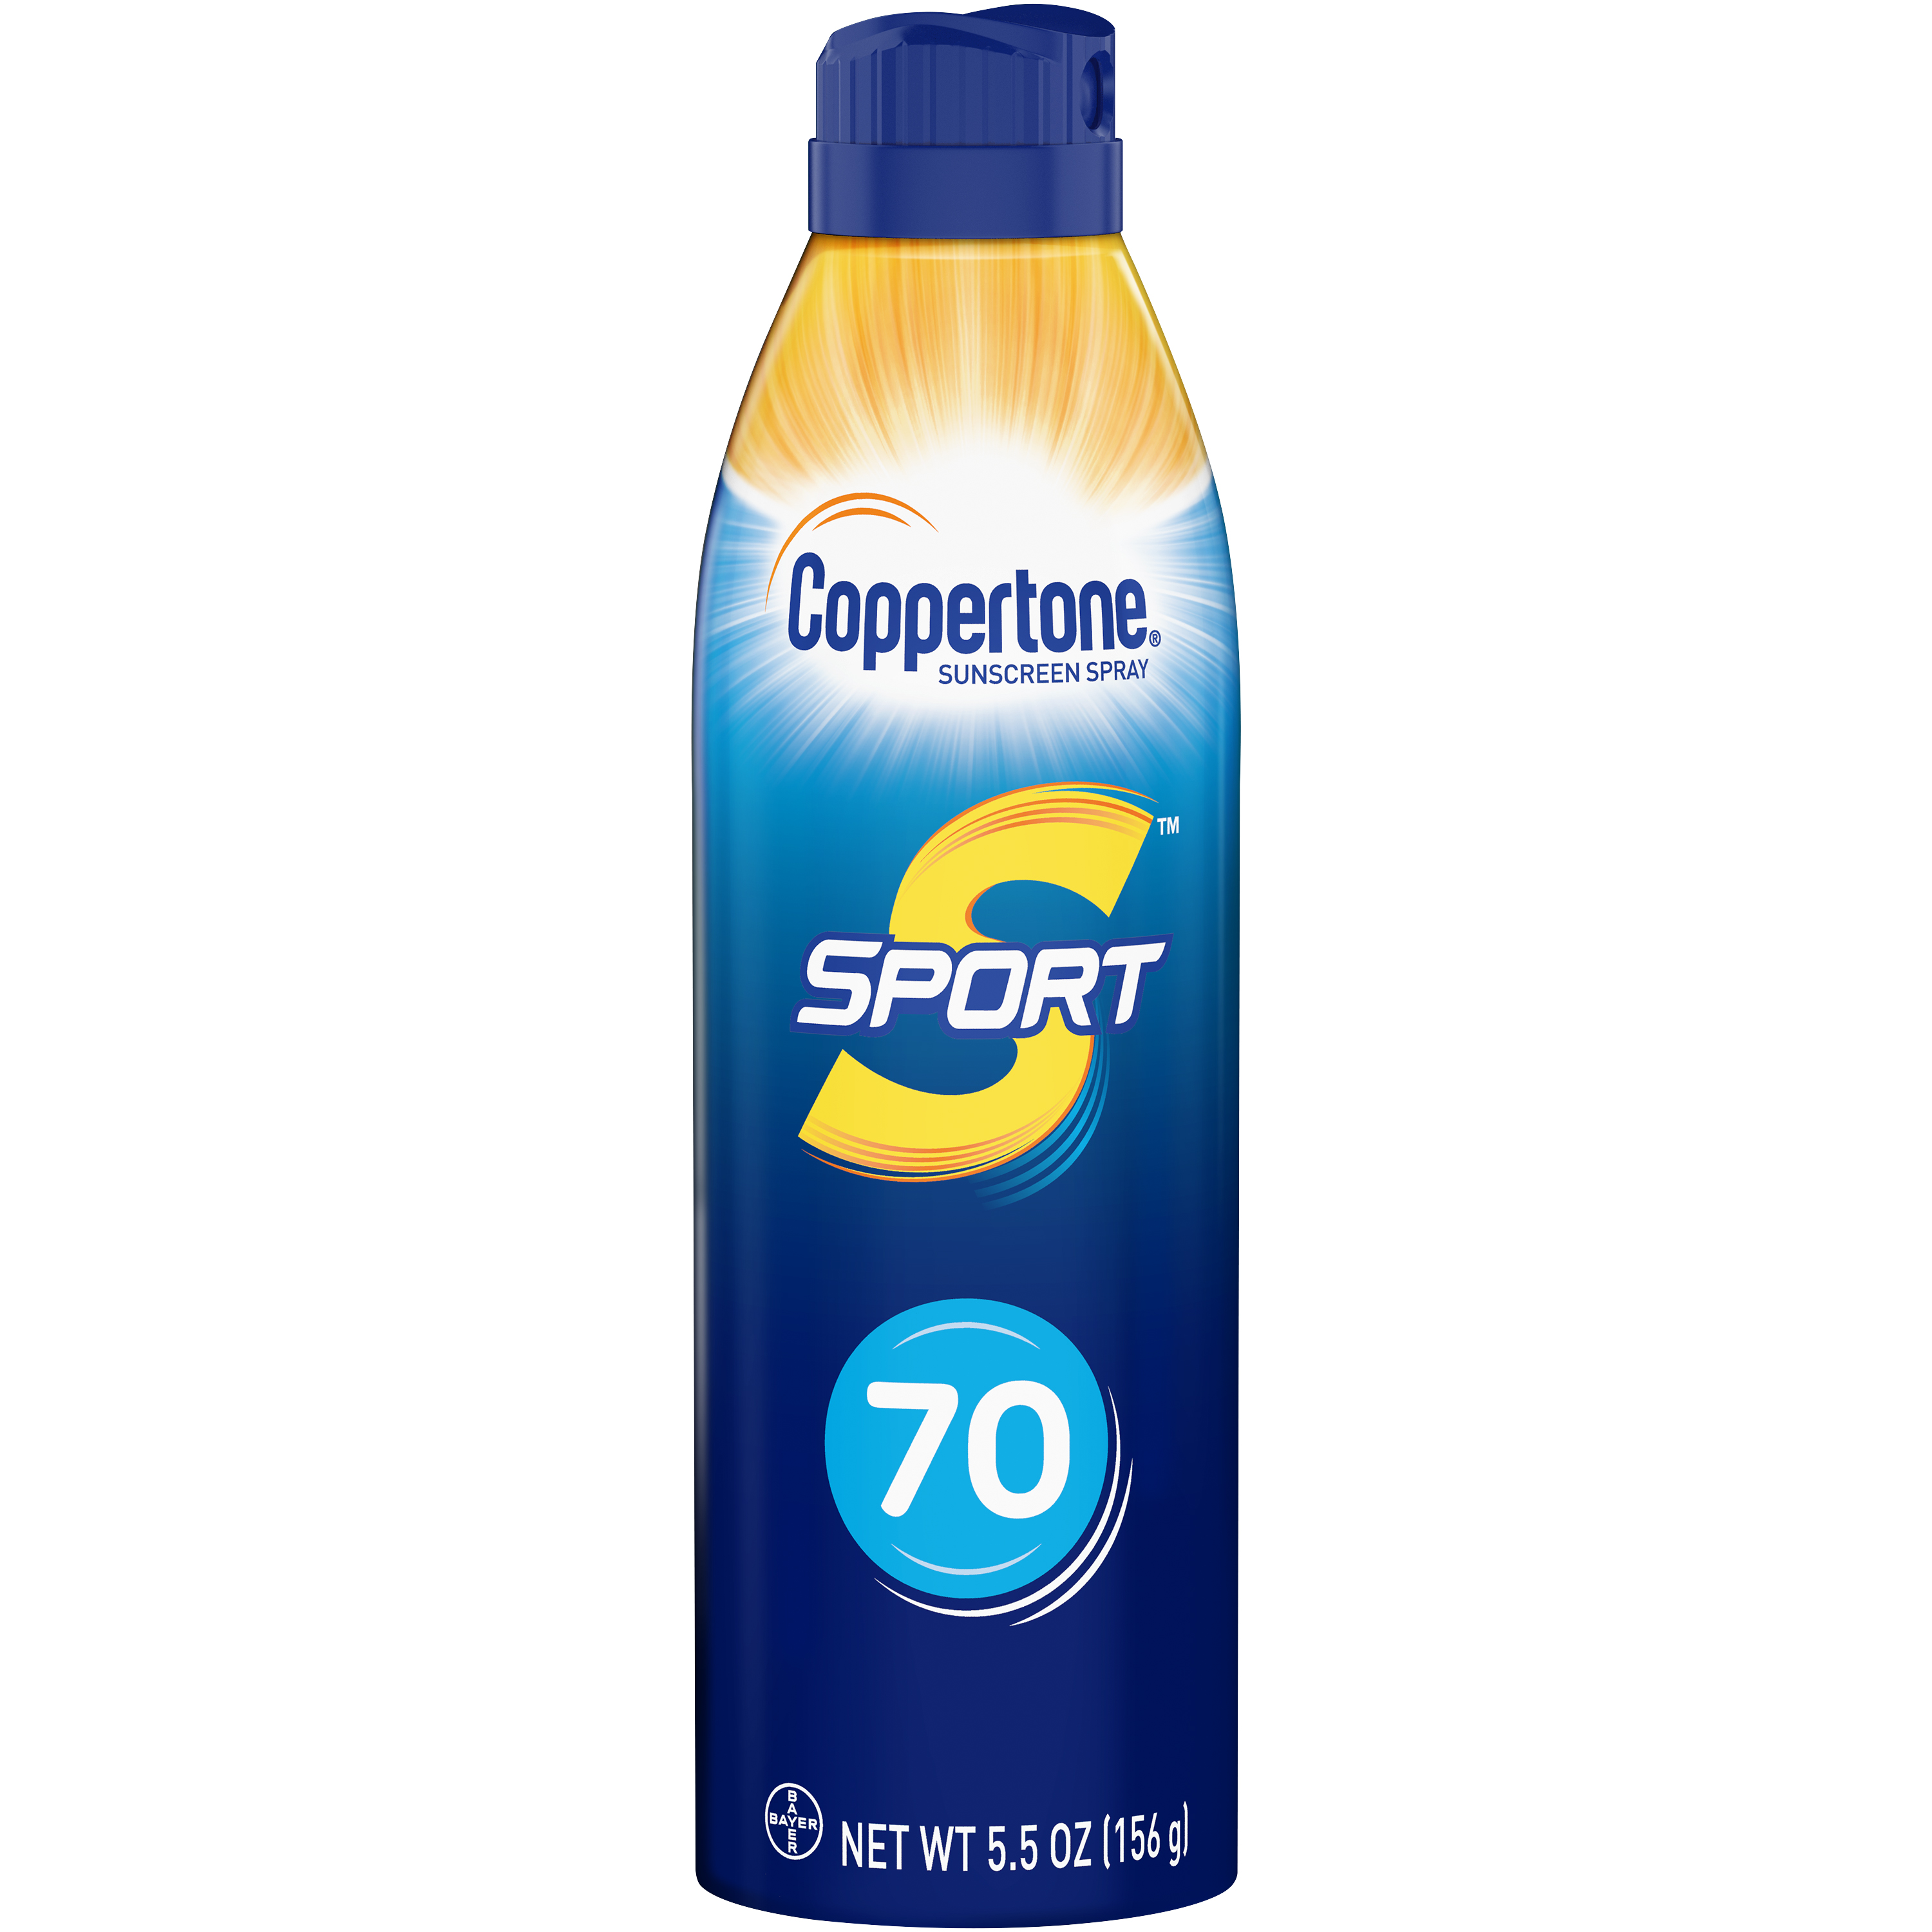 Coppertone Sport Sunscreen Continuous Spray SPF 70, 5.5 oz